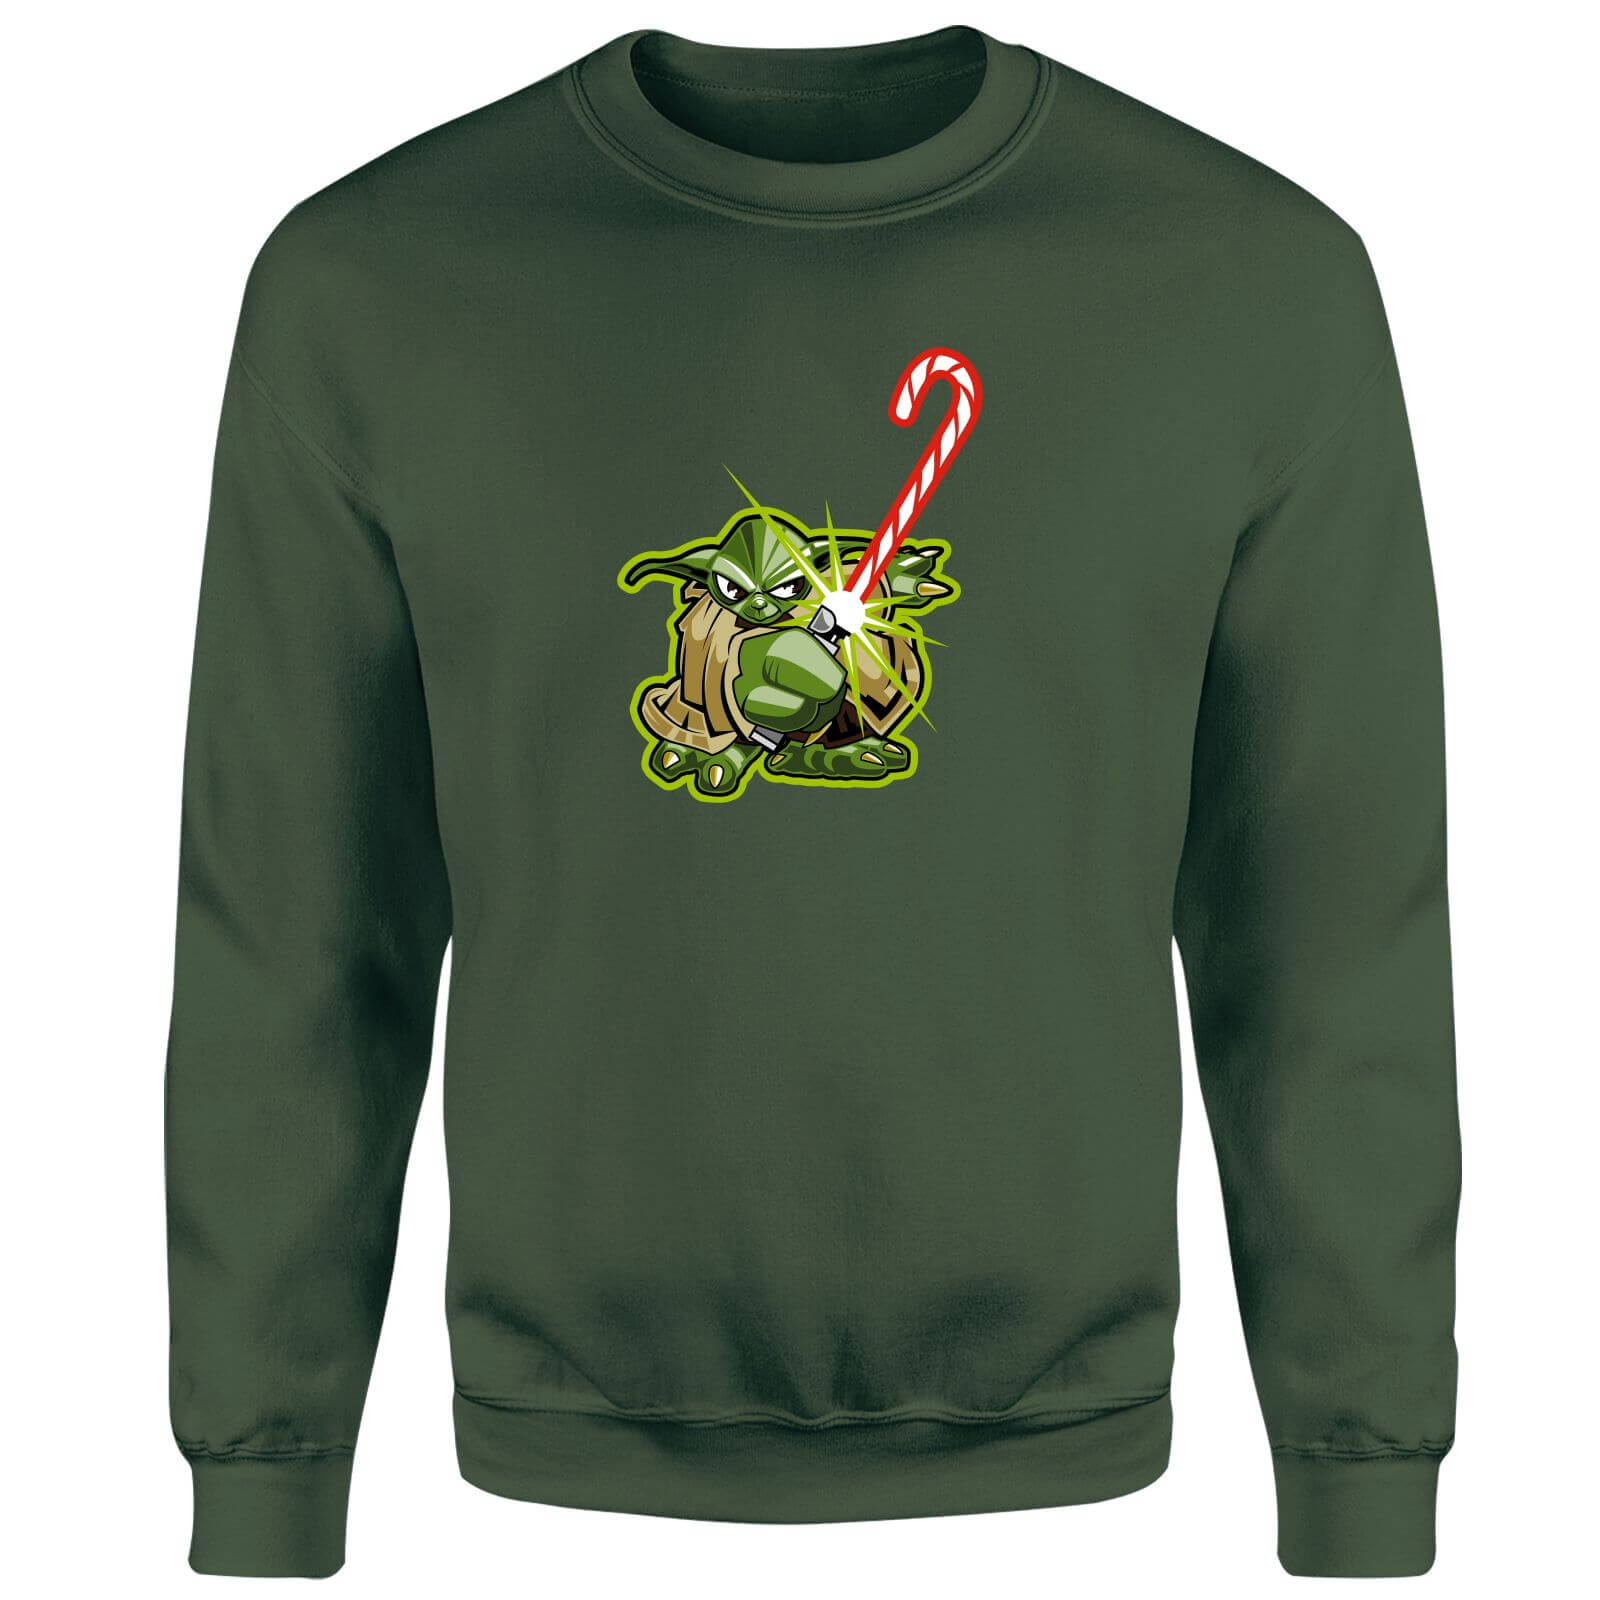 Star Wars Candy Cane Yoda Green Christmas Sweatshirt